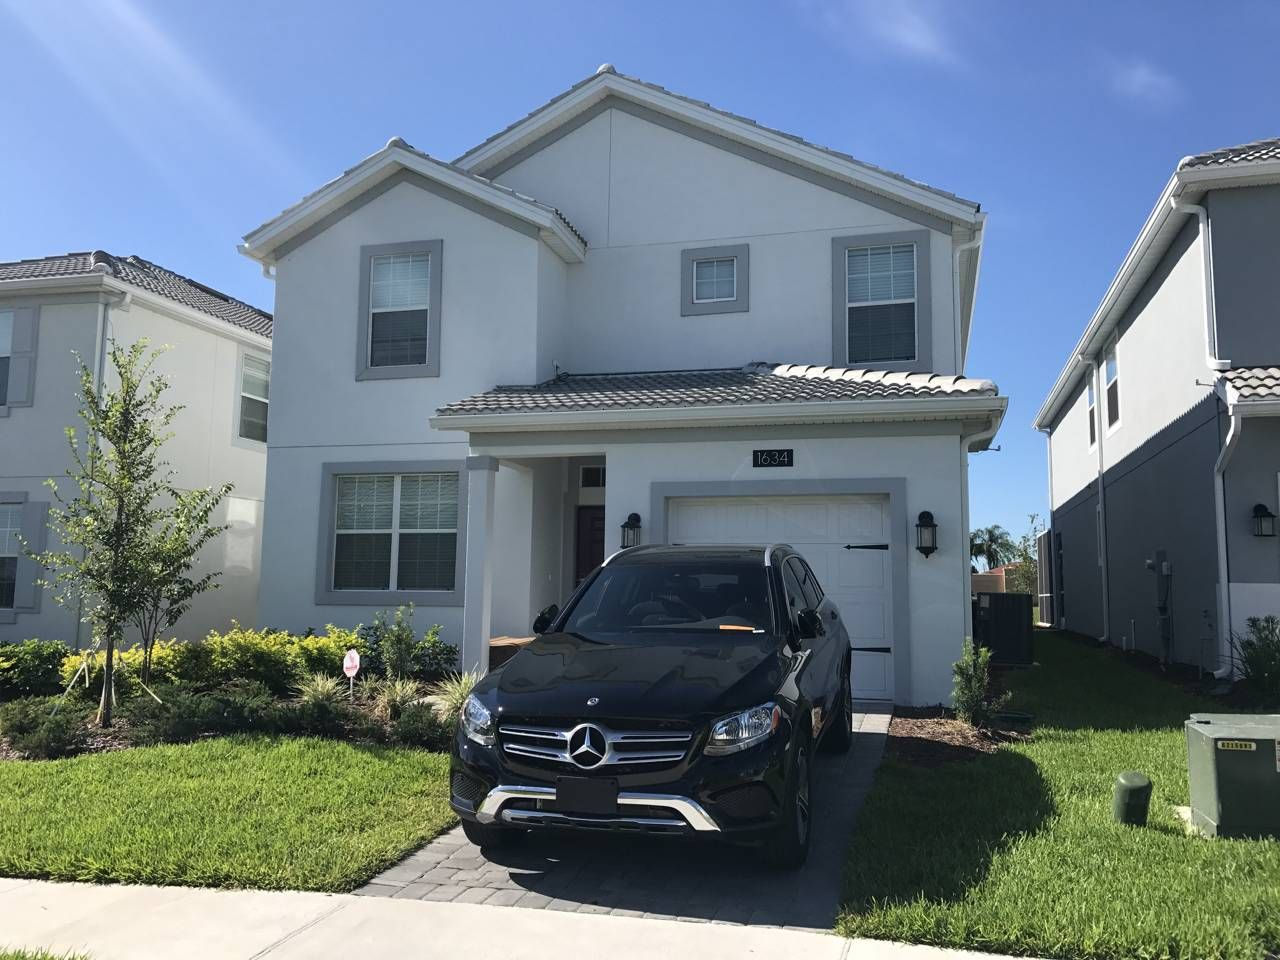 Aluguel de casa e carro em Orlando – Vacation Homes Collection e Bella Star Travel